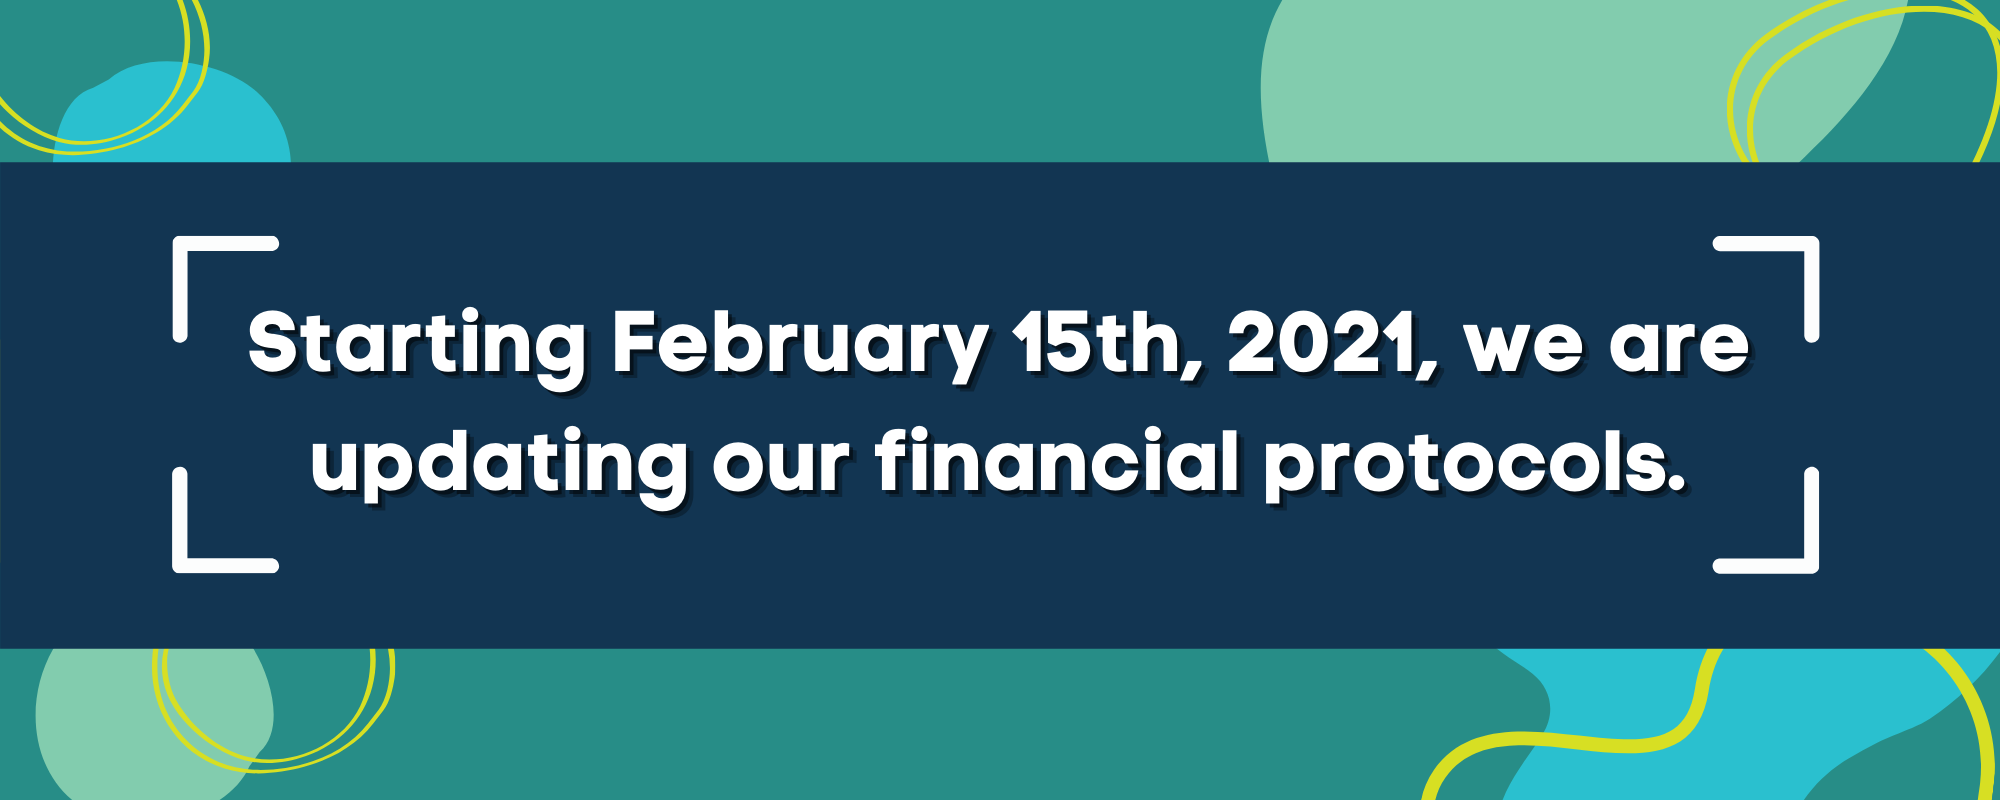 Financial Protocol Banner.png